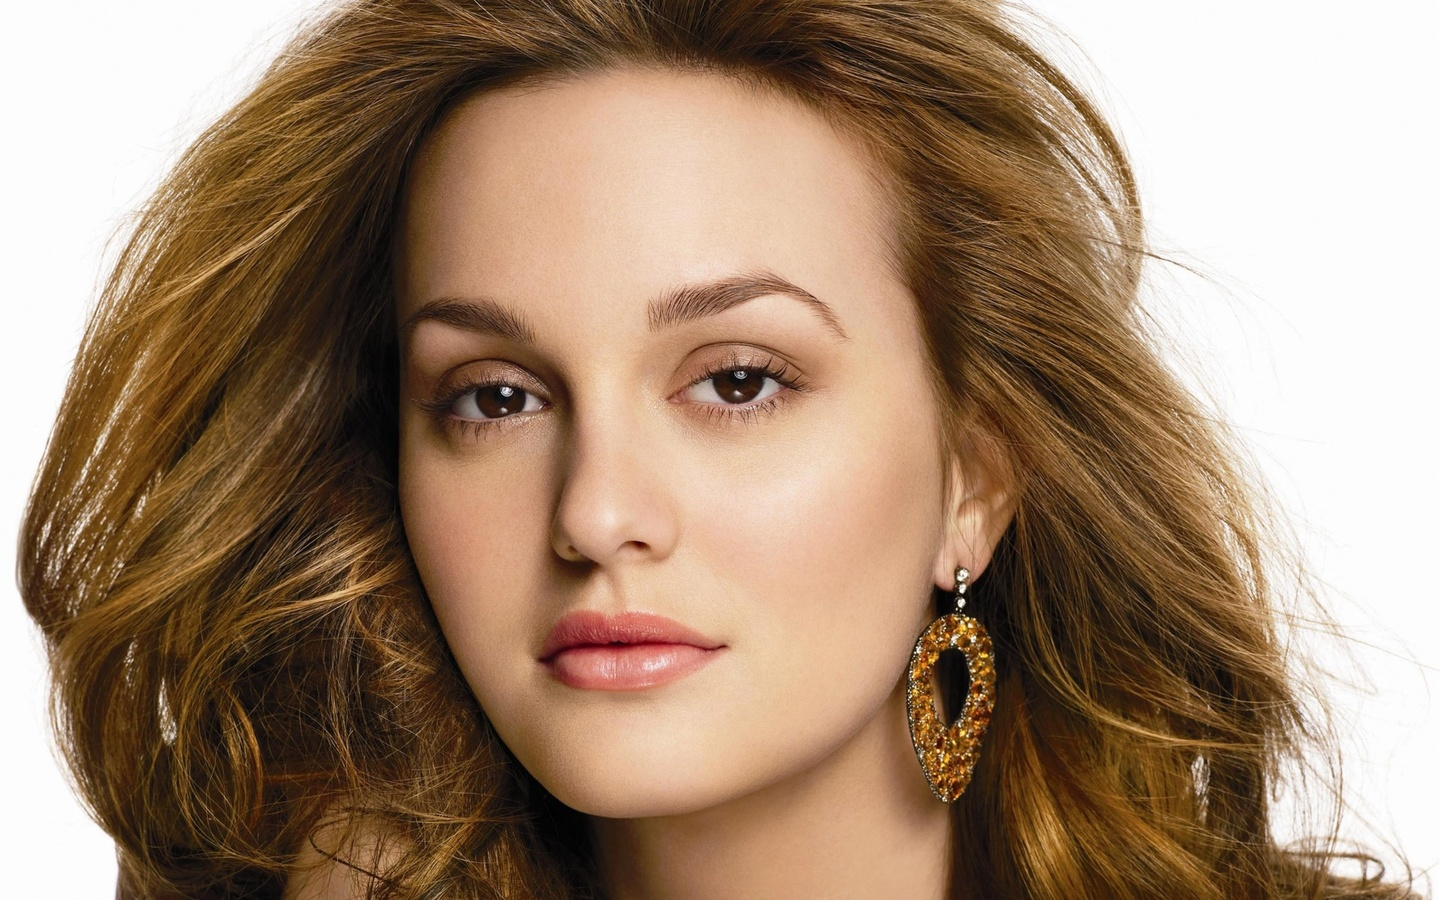 Leighton Meester Celebrity Wallpaper Your Hd Id 1440x900px